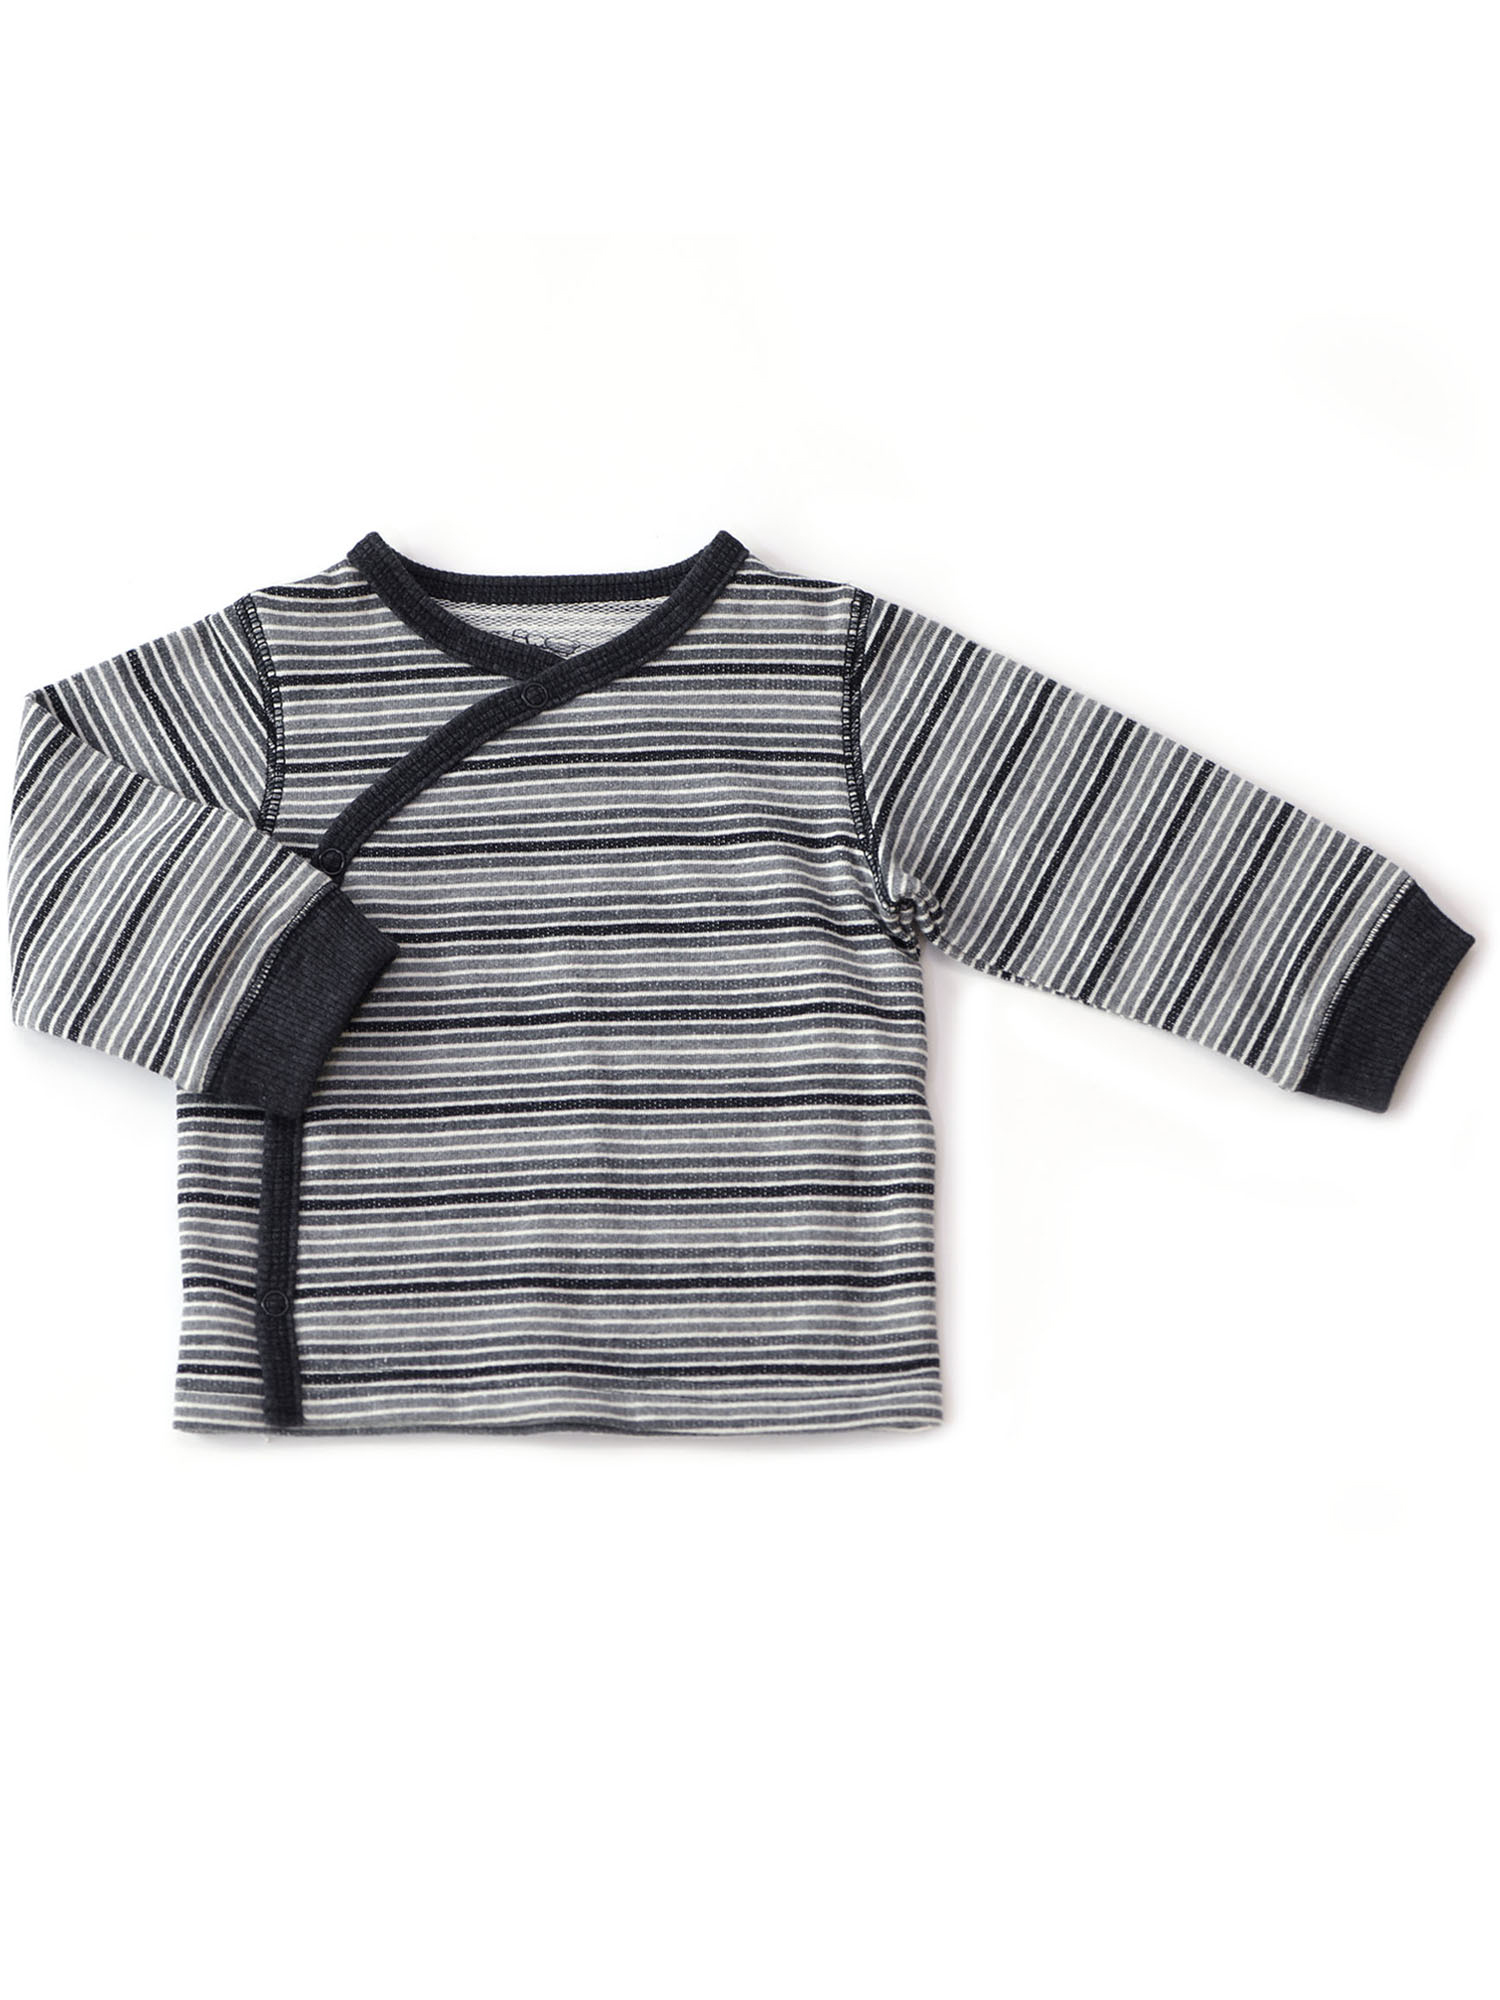 Kapital K Long Sleeve Kimono Wrap Cardigan Top (Baby Boys)